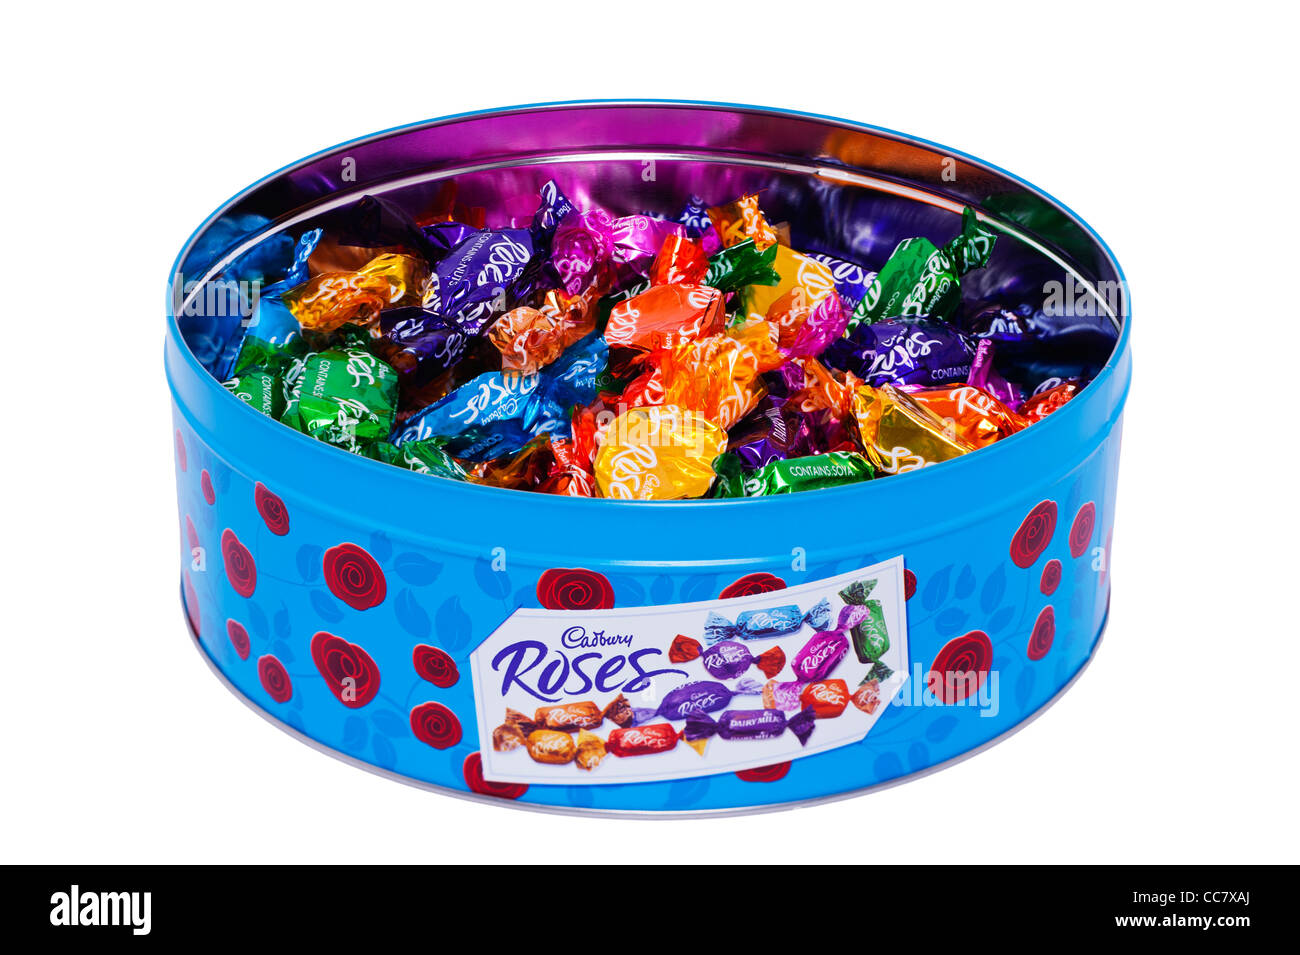 A tin of Cadbury Roses assorted chocolates on a white background - Stock Image